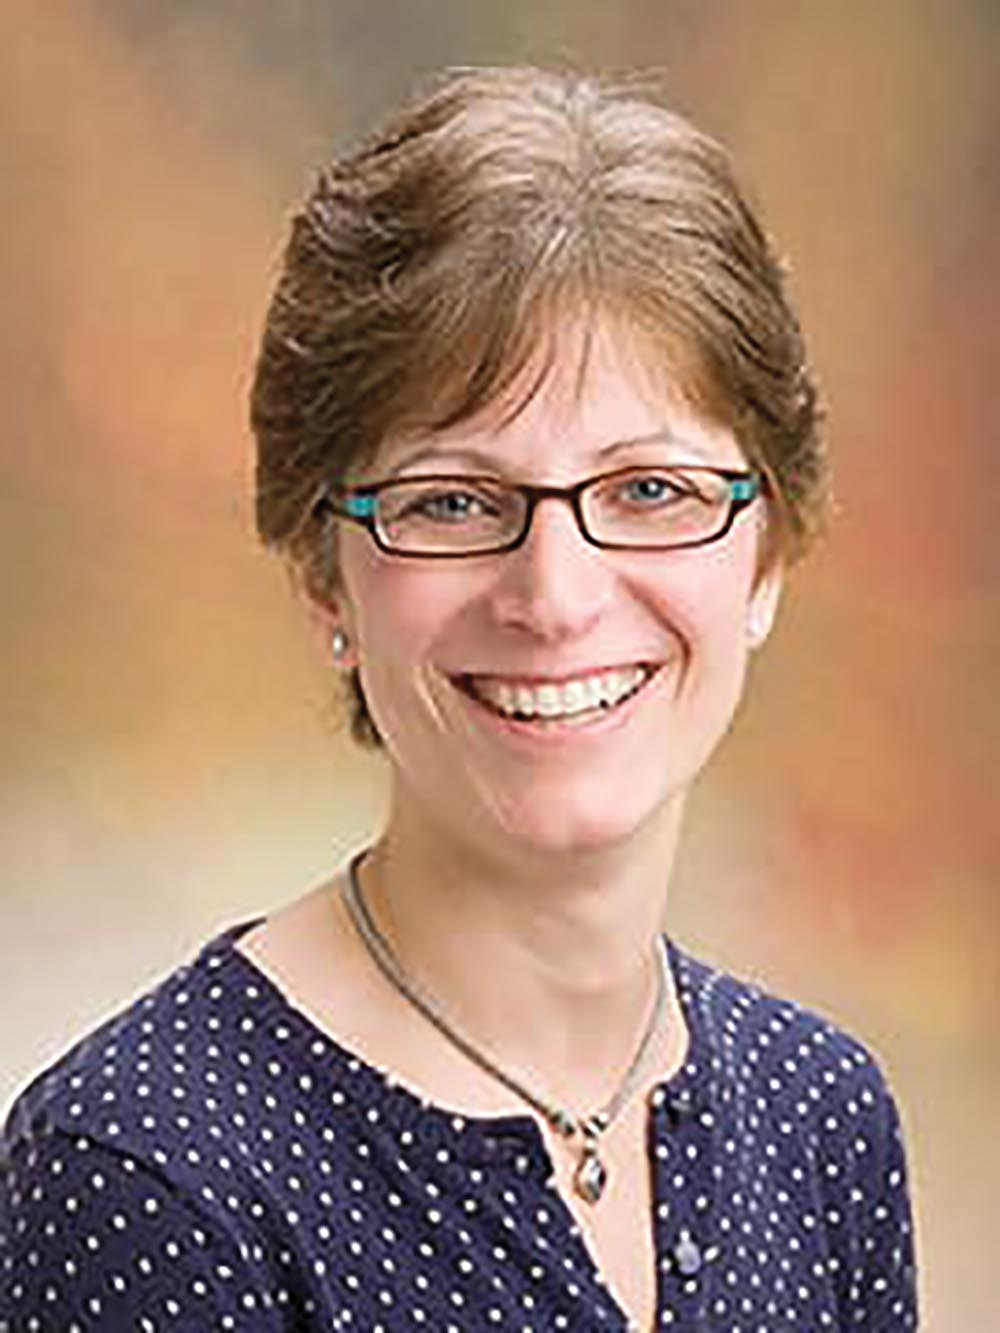 Wendy Hobbie, MSN, CRNP, FAAN, is the associate director of the Cancer Survivorship Program at the Children's Hospital of Philadelphia in Pennsylvania